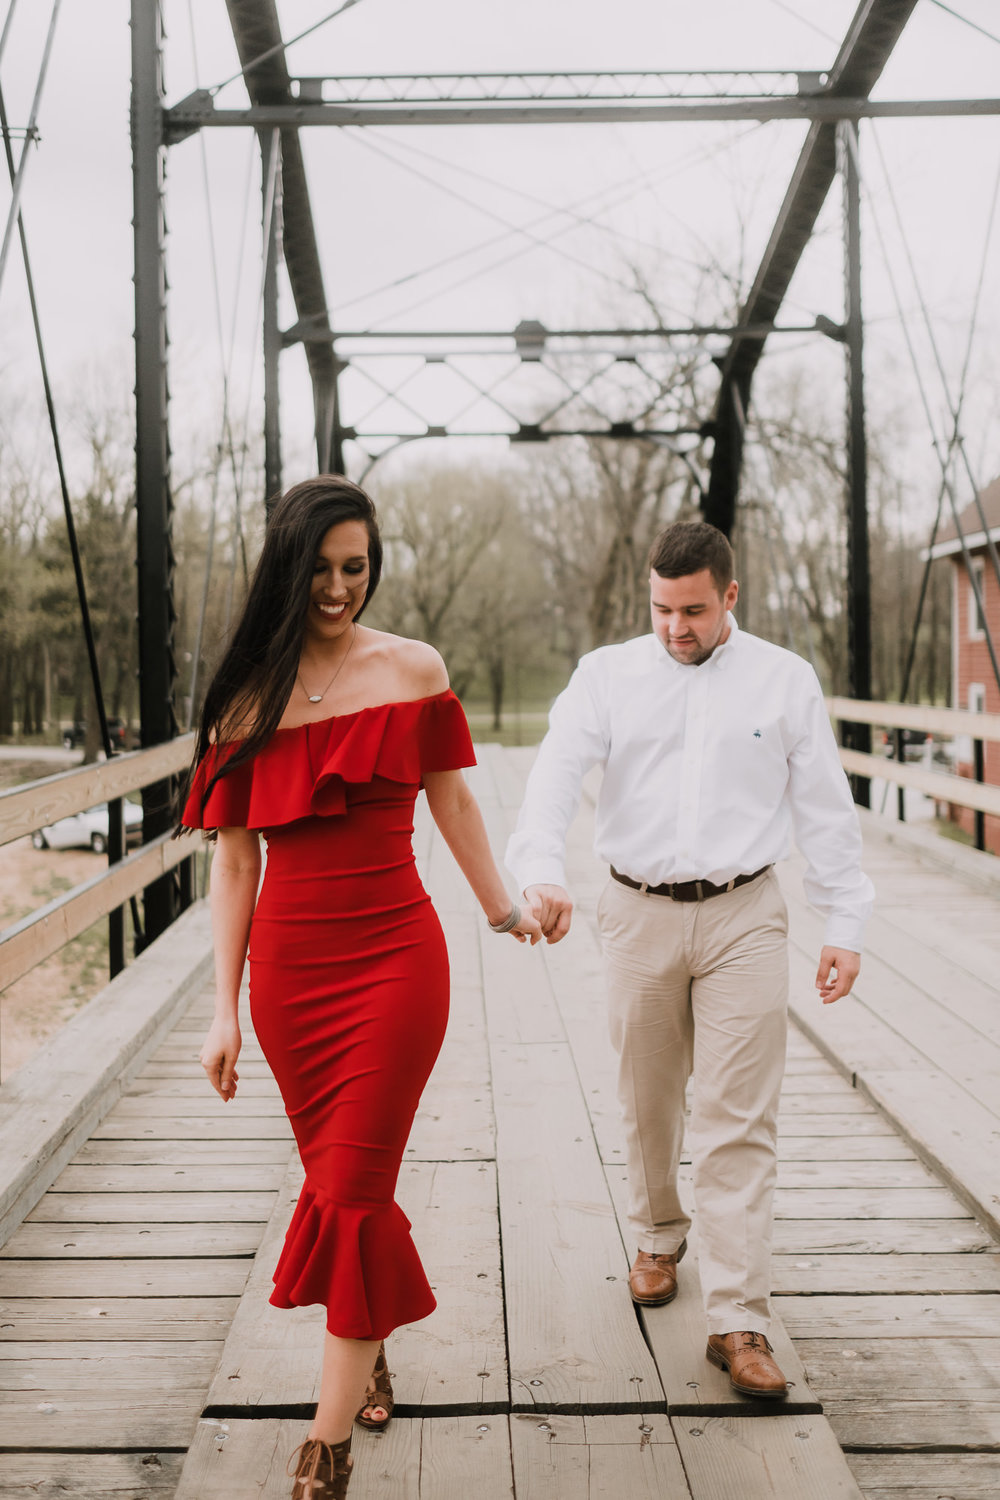 haley+joe.enagement©2018mileswittboyer-4.jpg